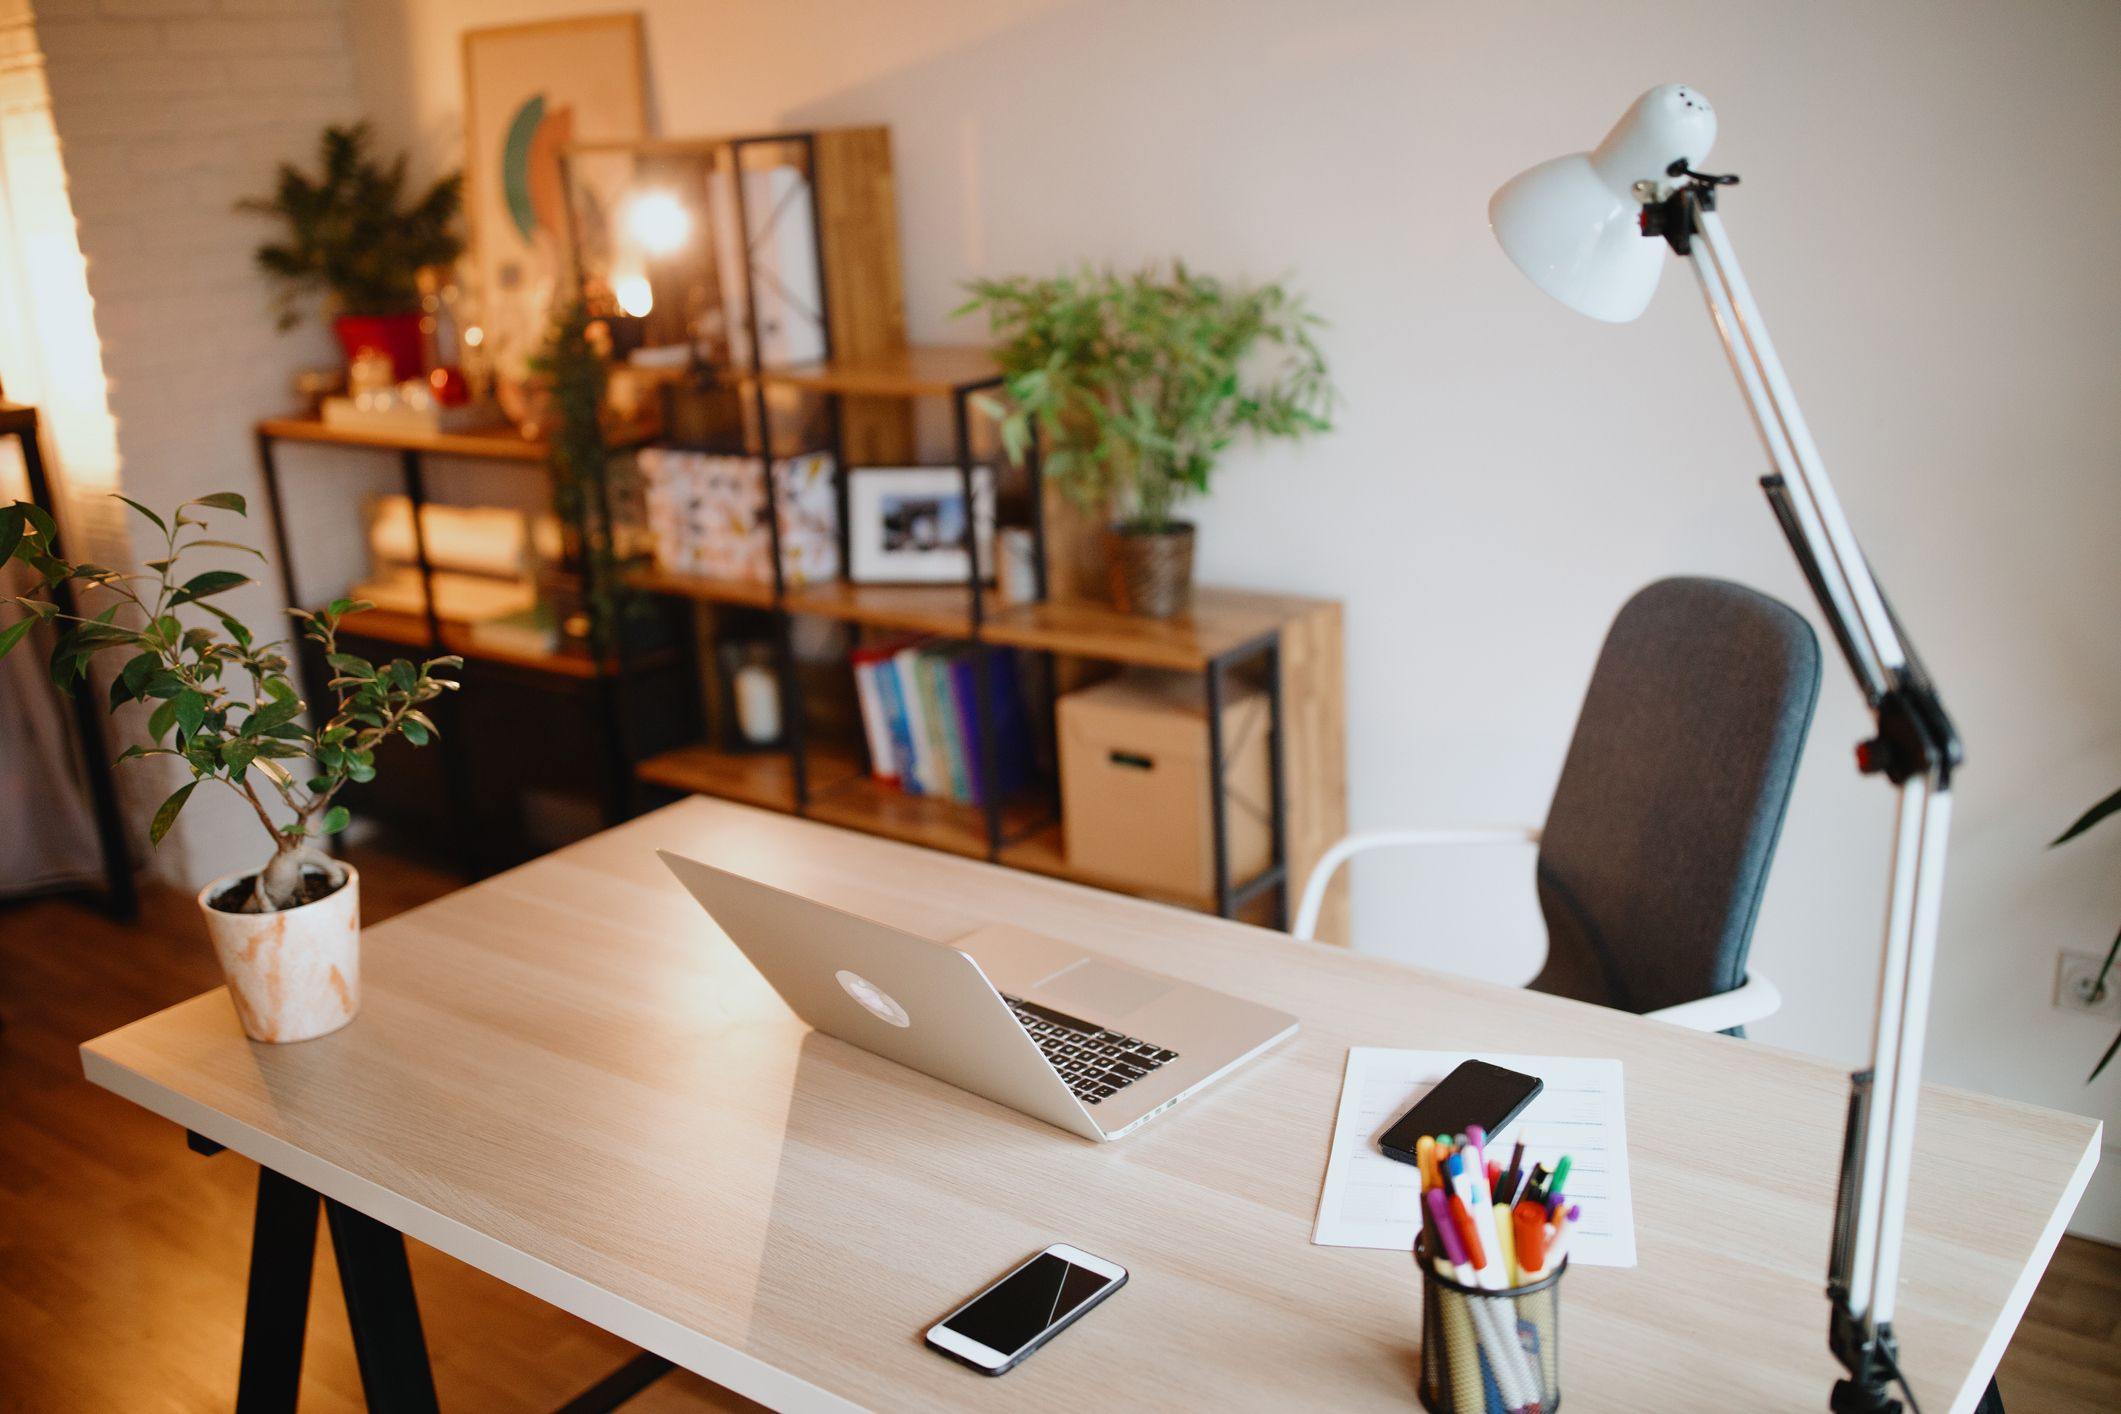 COVID-19: Cyber Security Tips When Working from Home